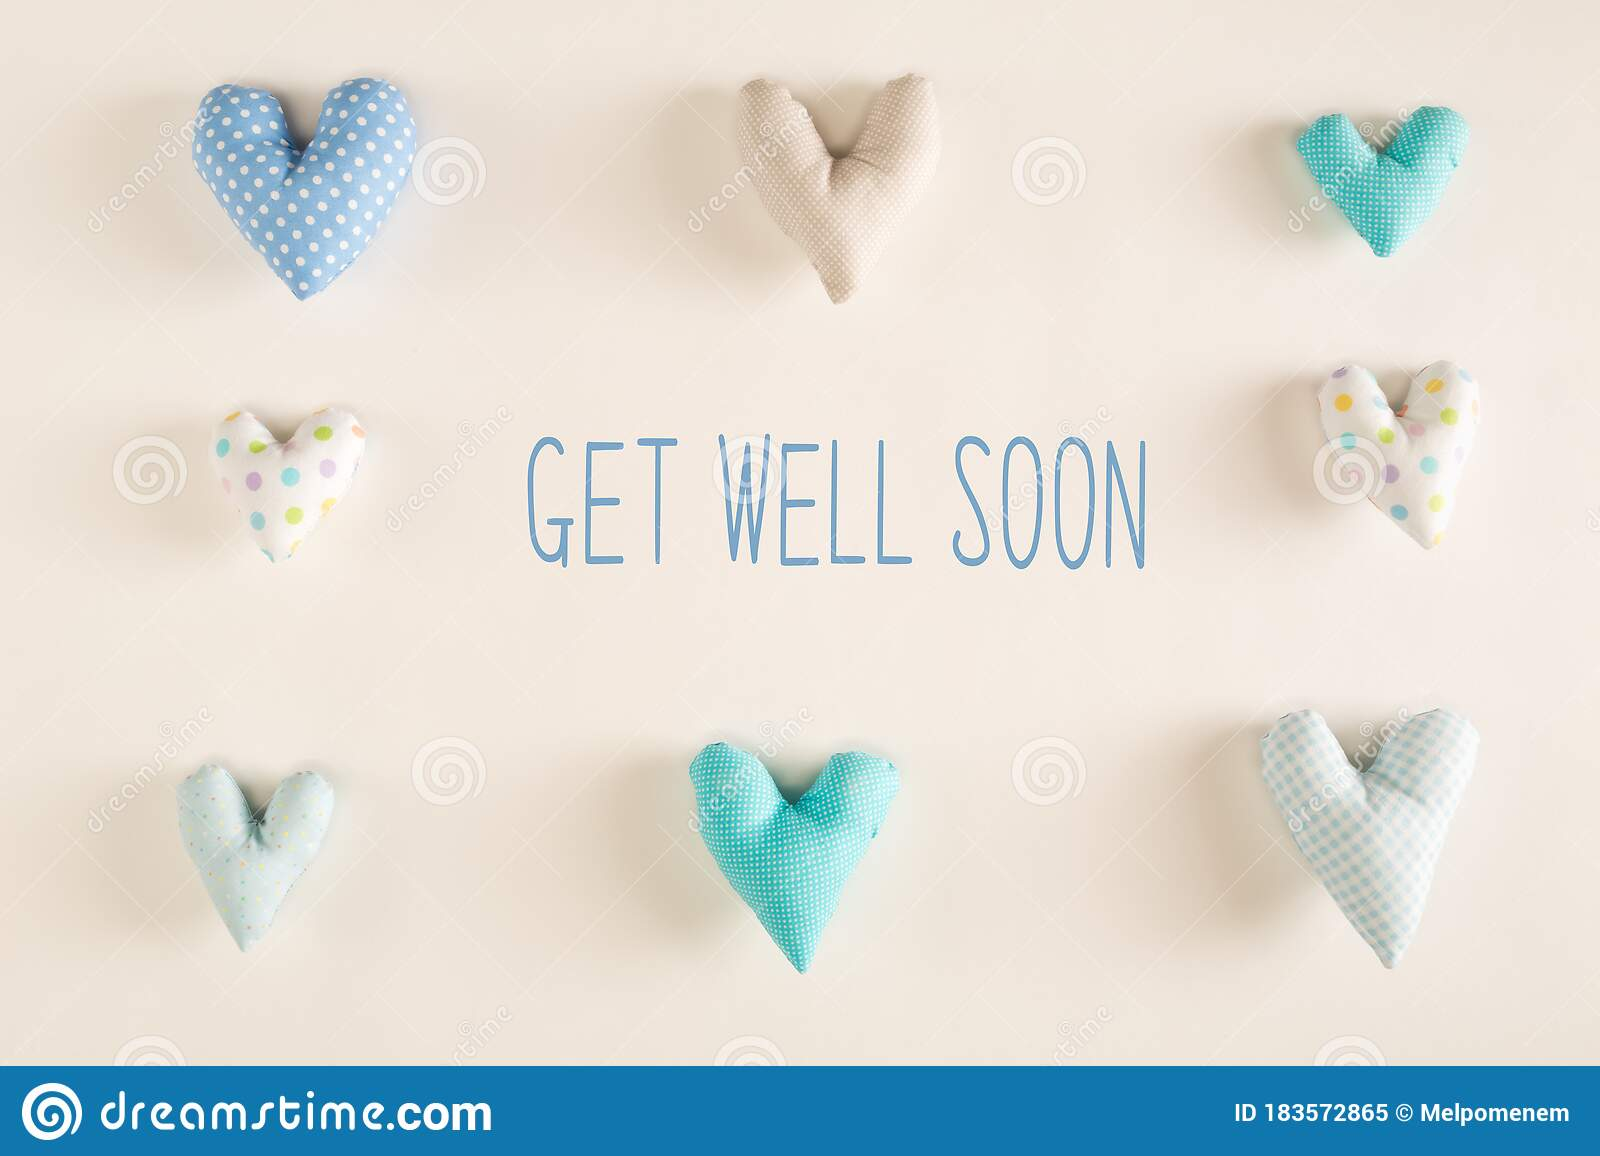 Get Well Soon Message With Blue Heart Cushions Stock Image